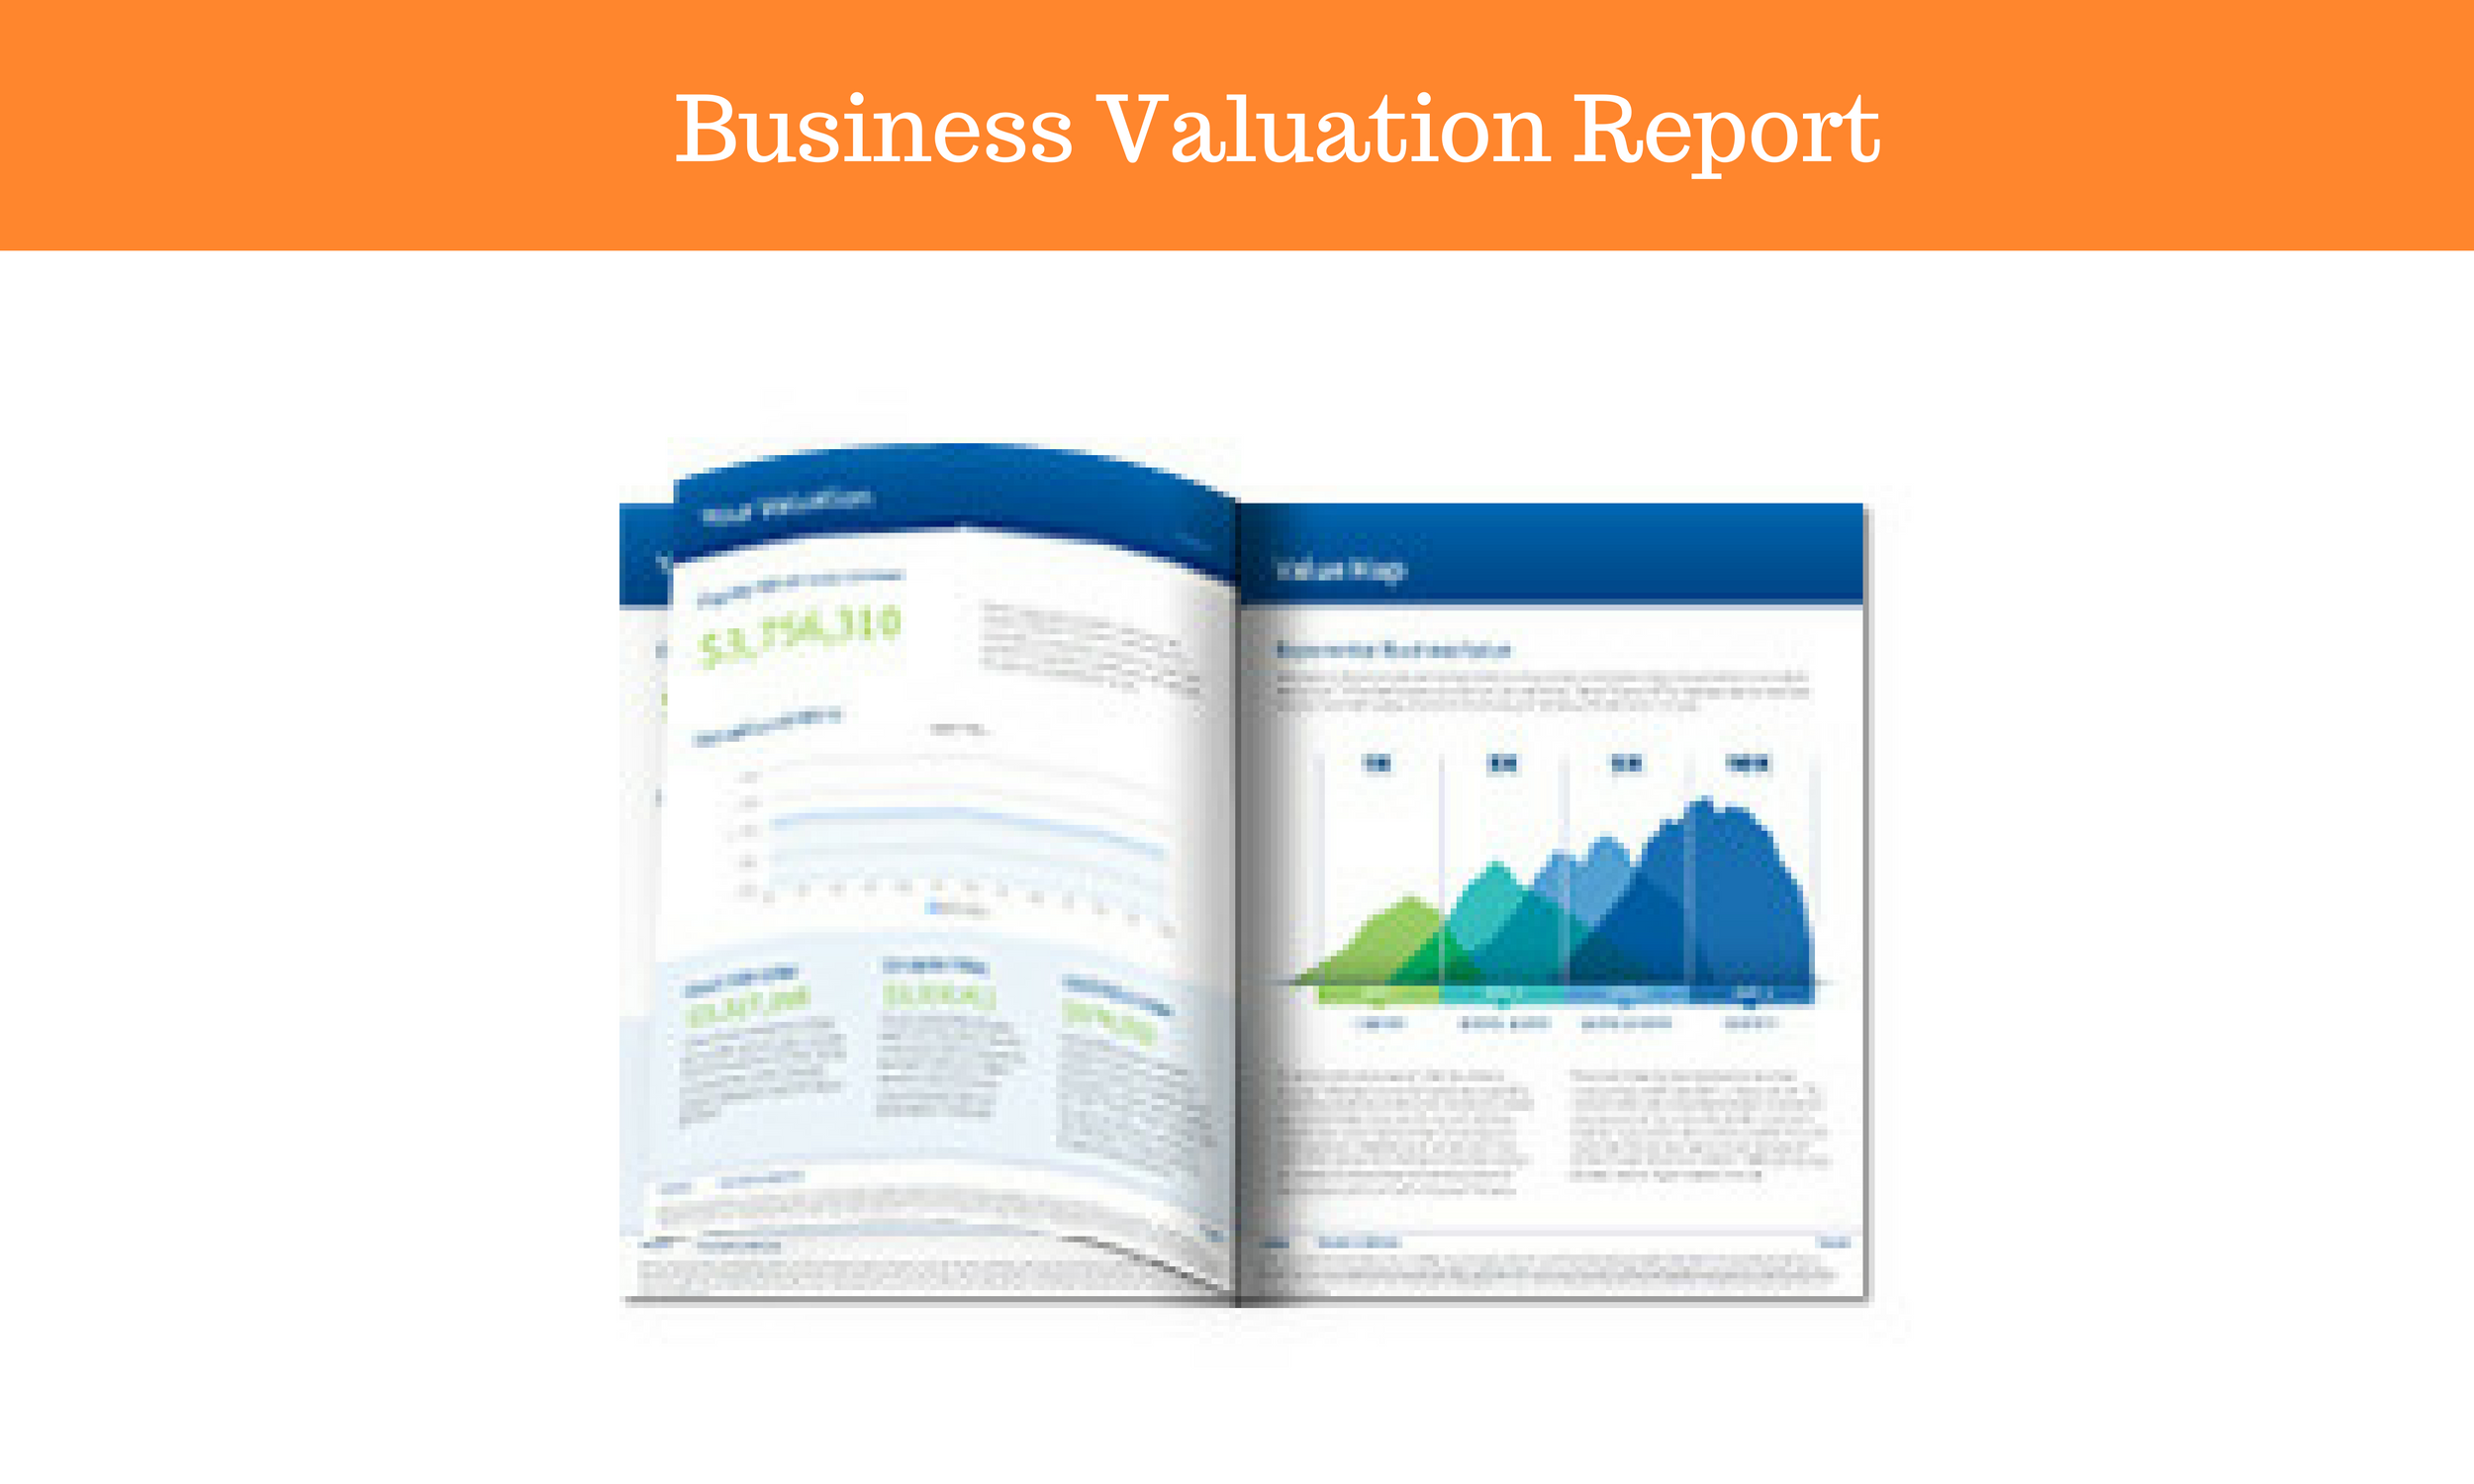 BUSINESS VALUATION REPORT – Value your Business